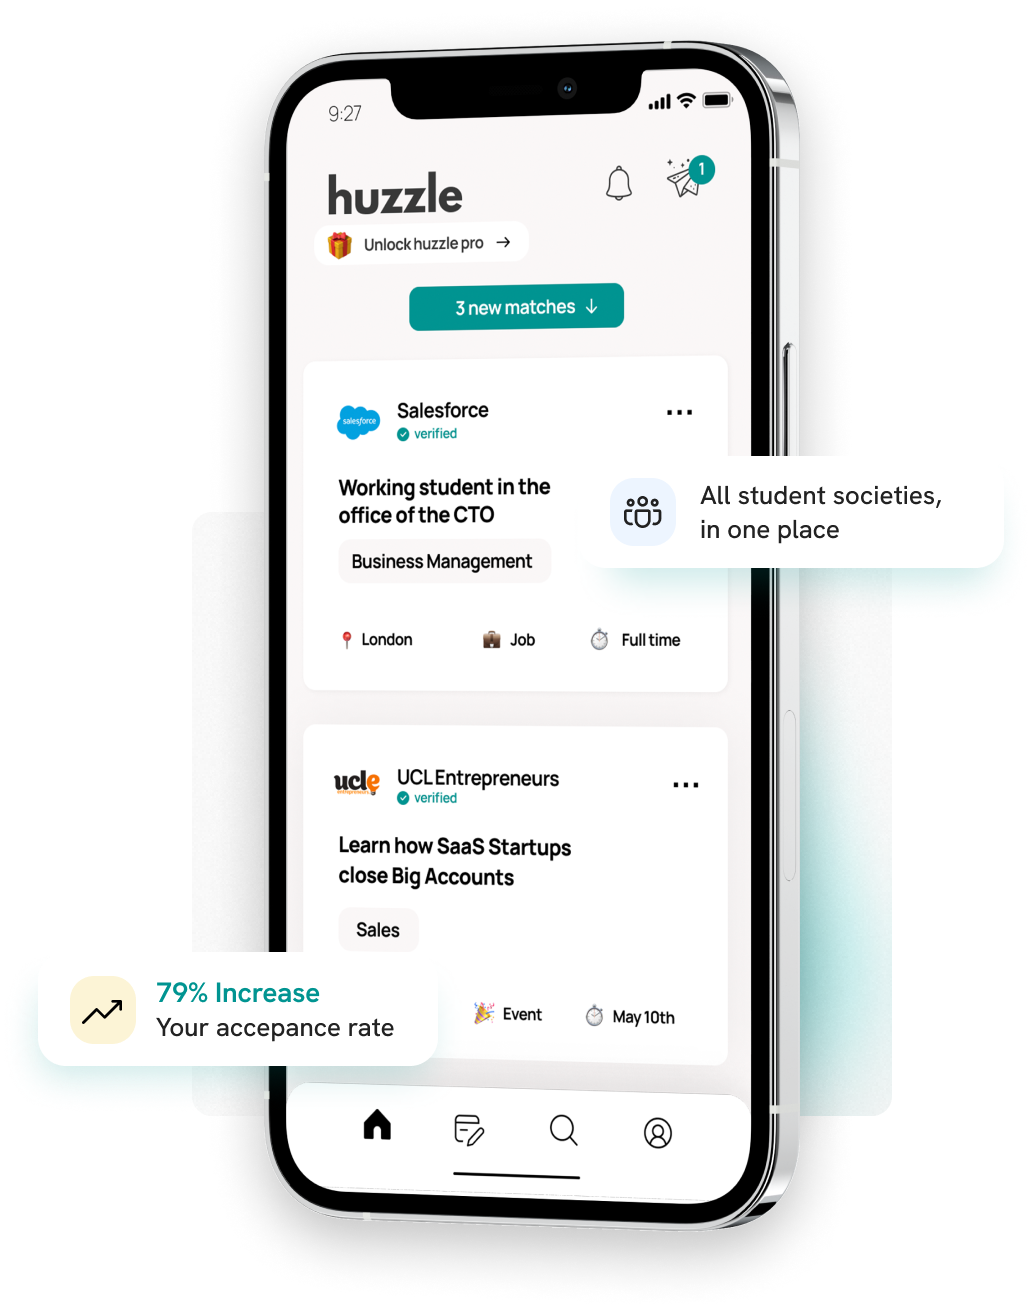 huzzle app home feed